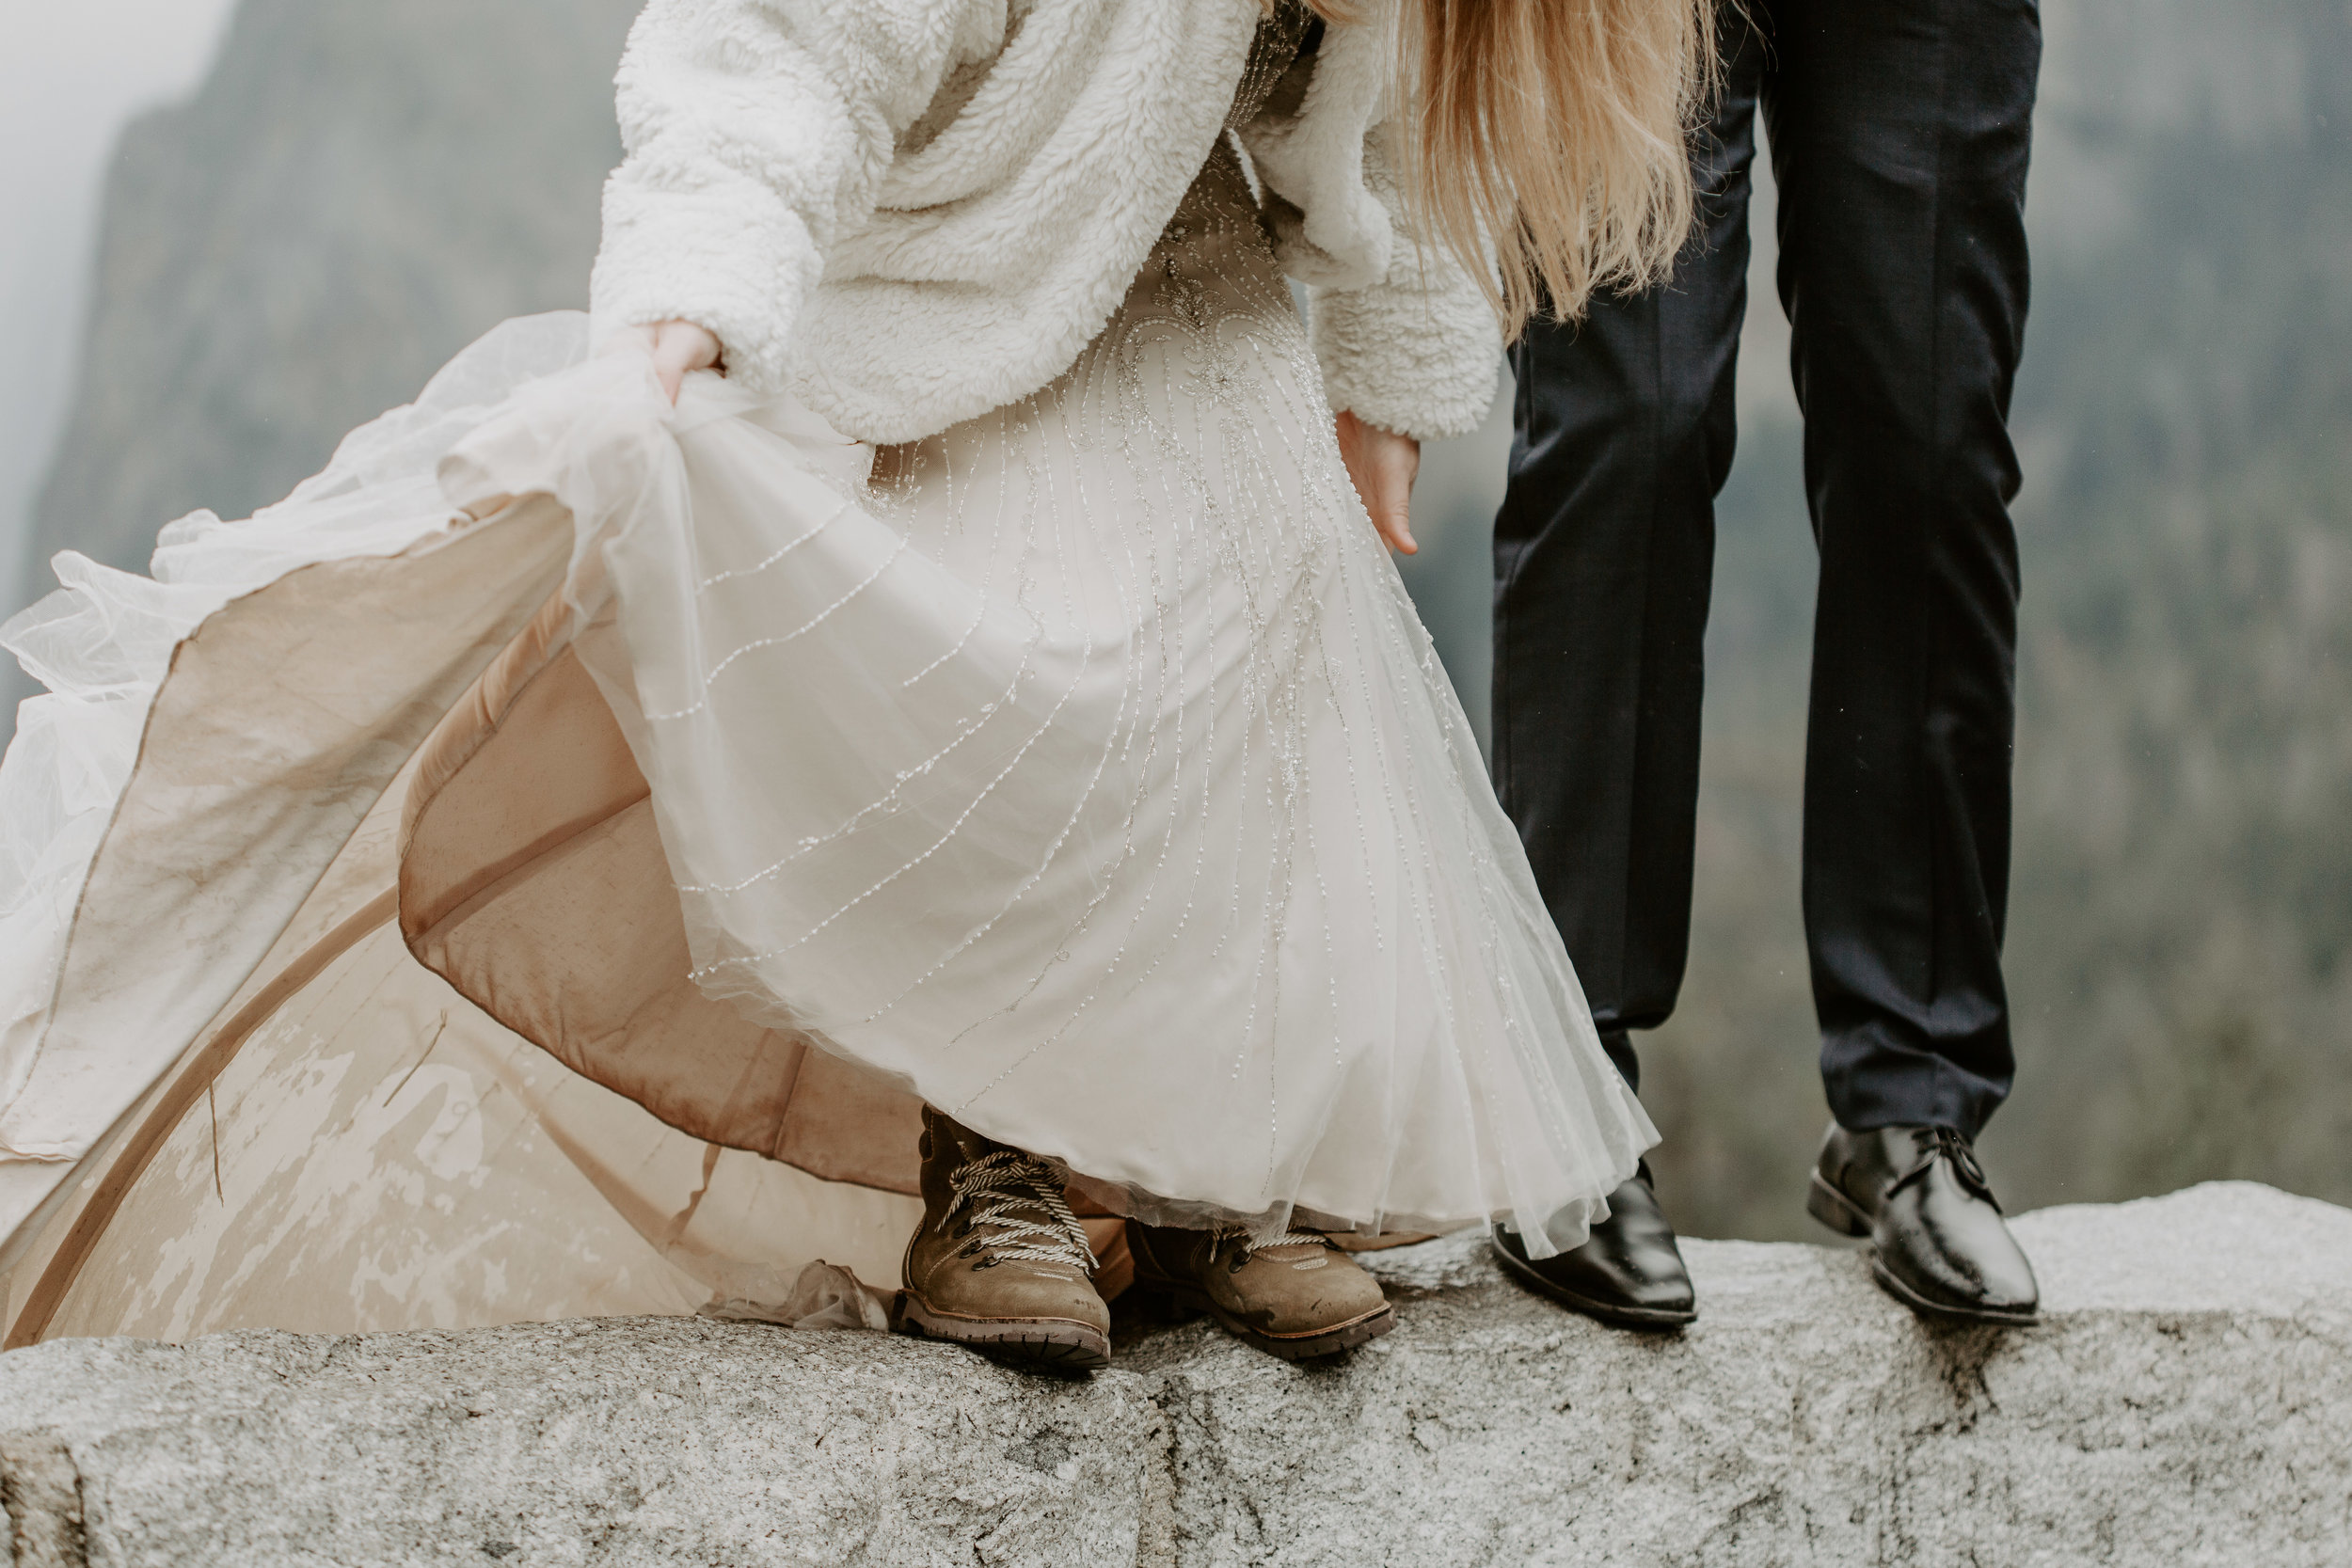 nicole-daacke-photography-yousemite-national-park-elopement-photographer-winter-cloud-moody-elope-inspiration-yosemite-valley-tunnel-view-winter-cloud-fog-weather-wedding-photos-15.jpg